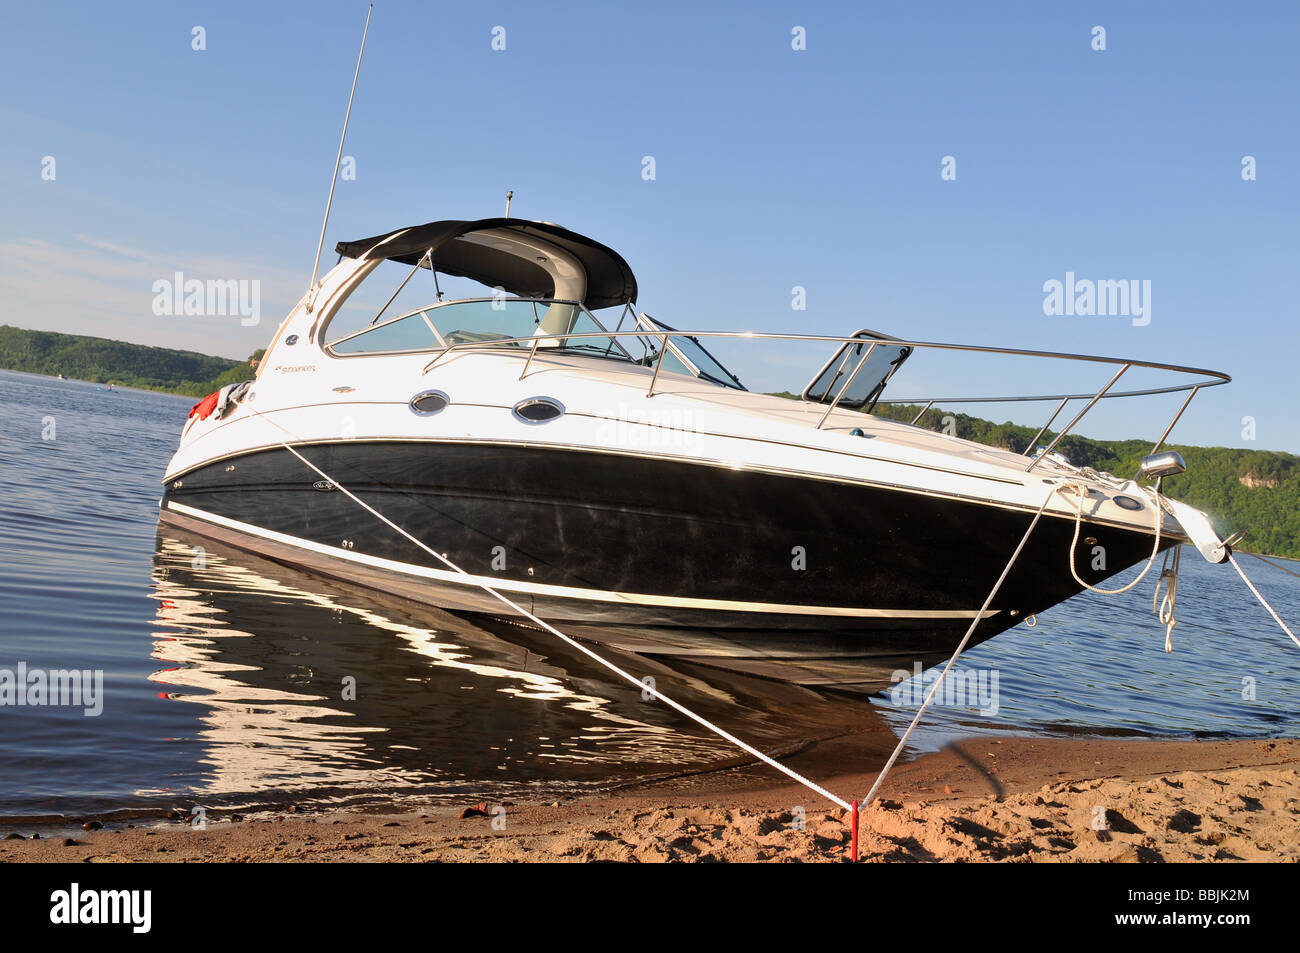 Anchored boat side view. - Stock Image